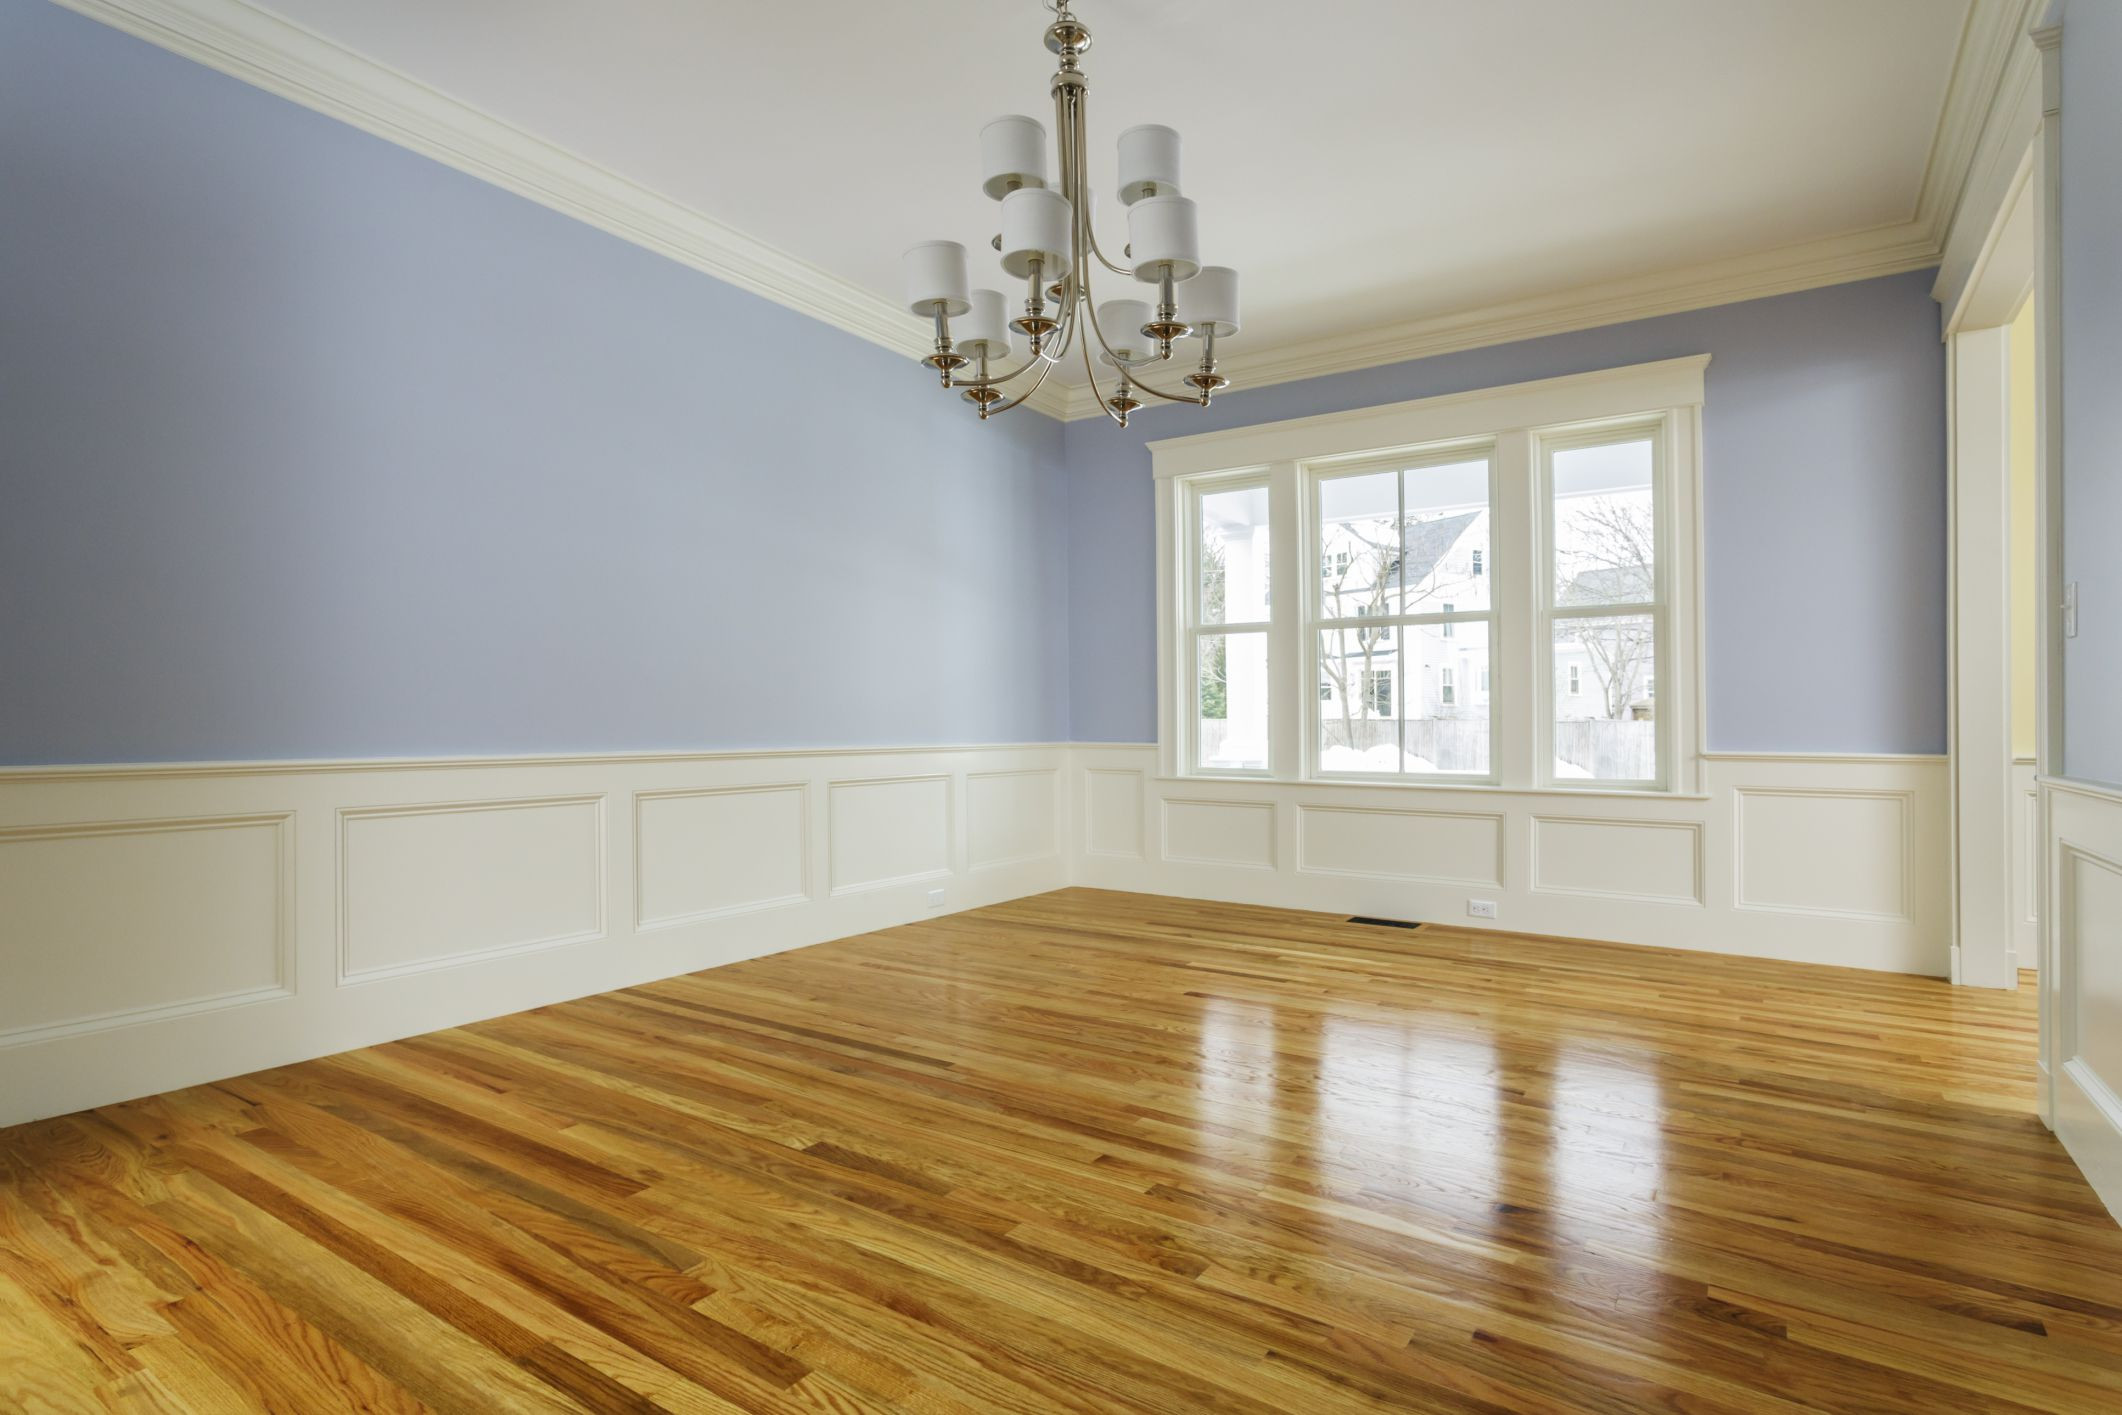 hardwood floor cleaner shine of how to make hardwood floors shiny with 168686572 56a4e87c3df78cf7728544a2